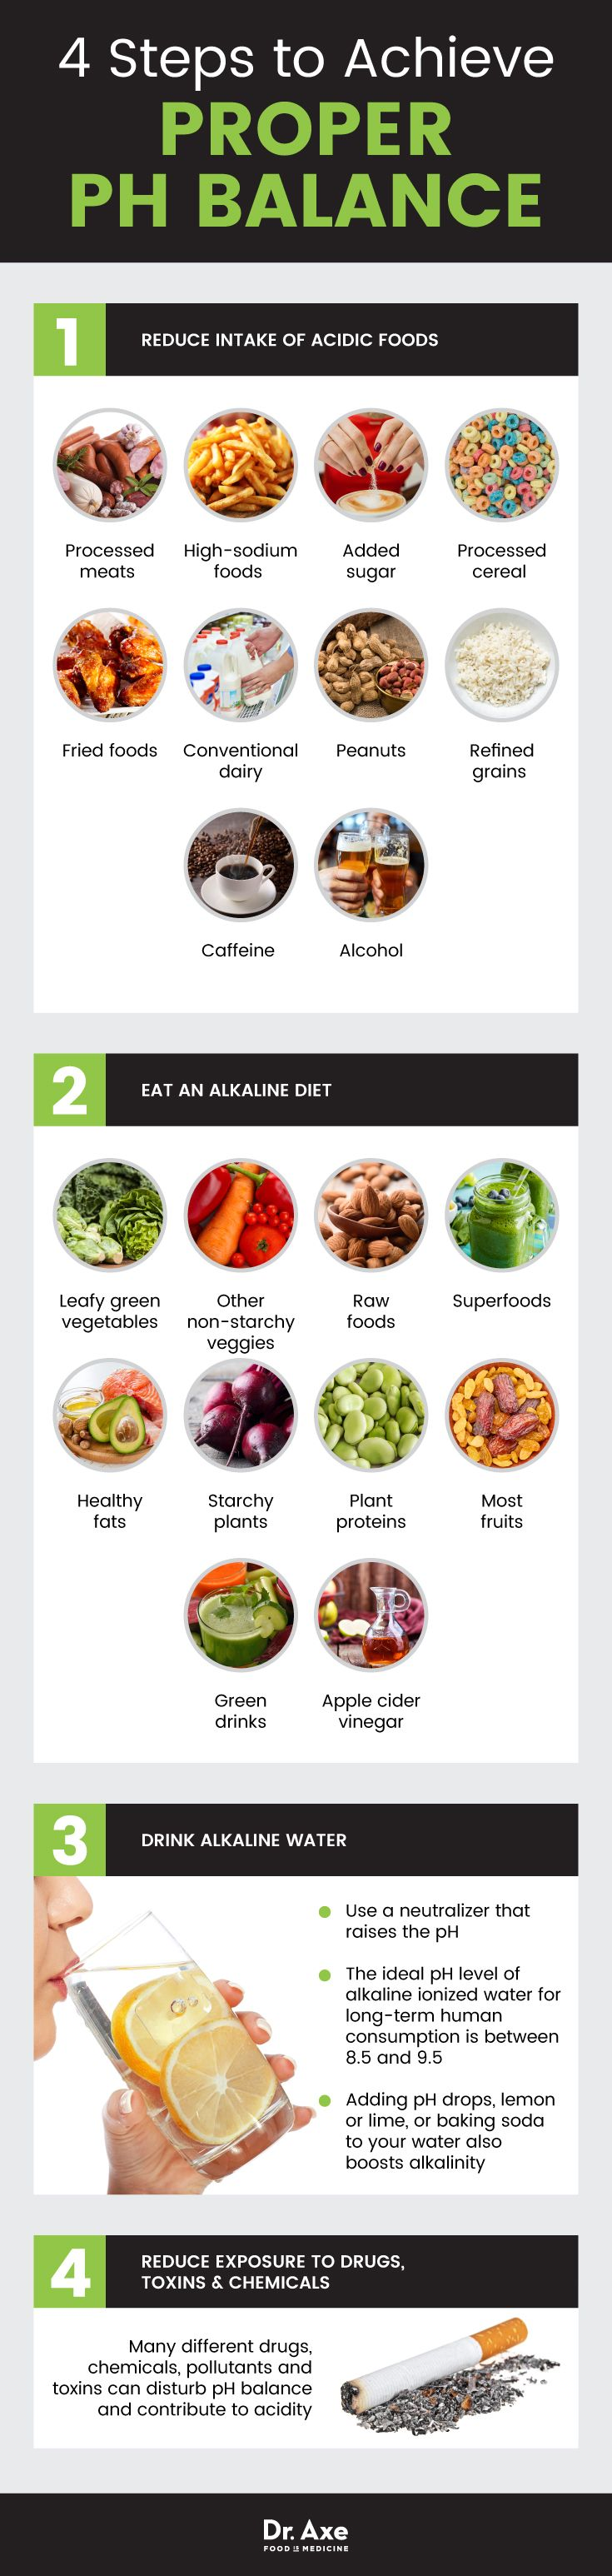 Alkaline diet: What cancer patients should know